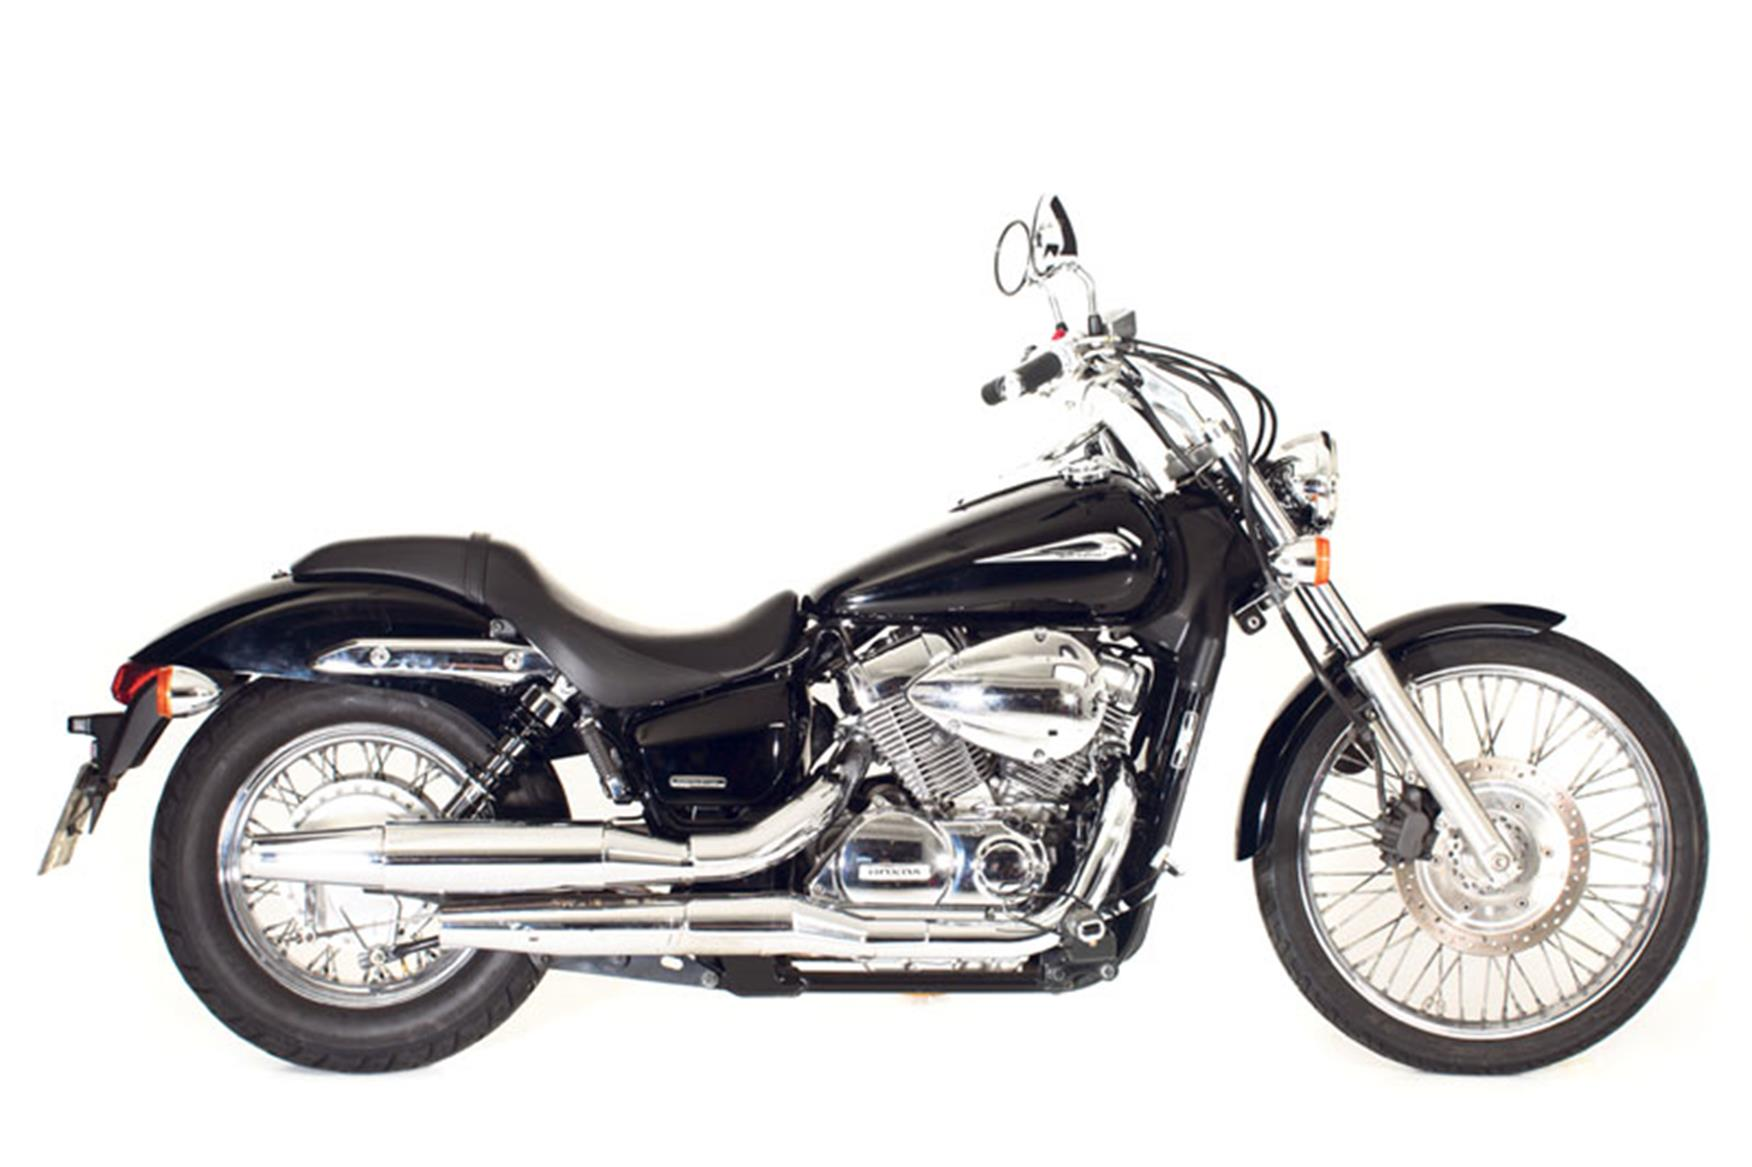 Used bike guide: Japanese Middleweight Cruisers